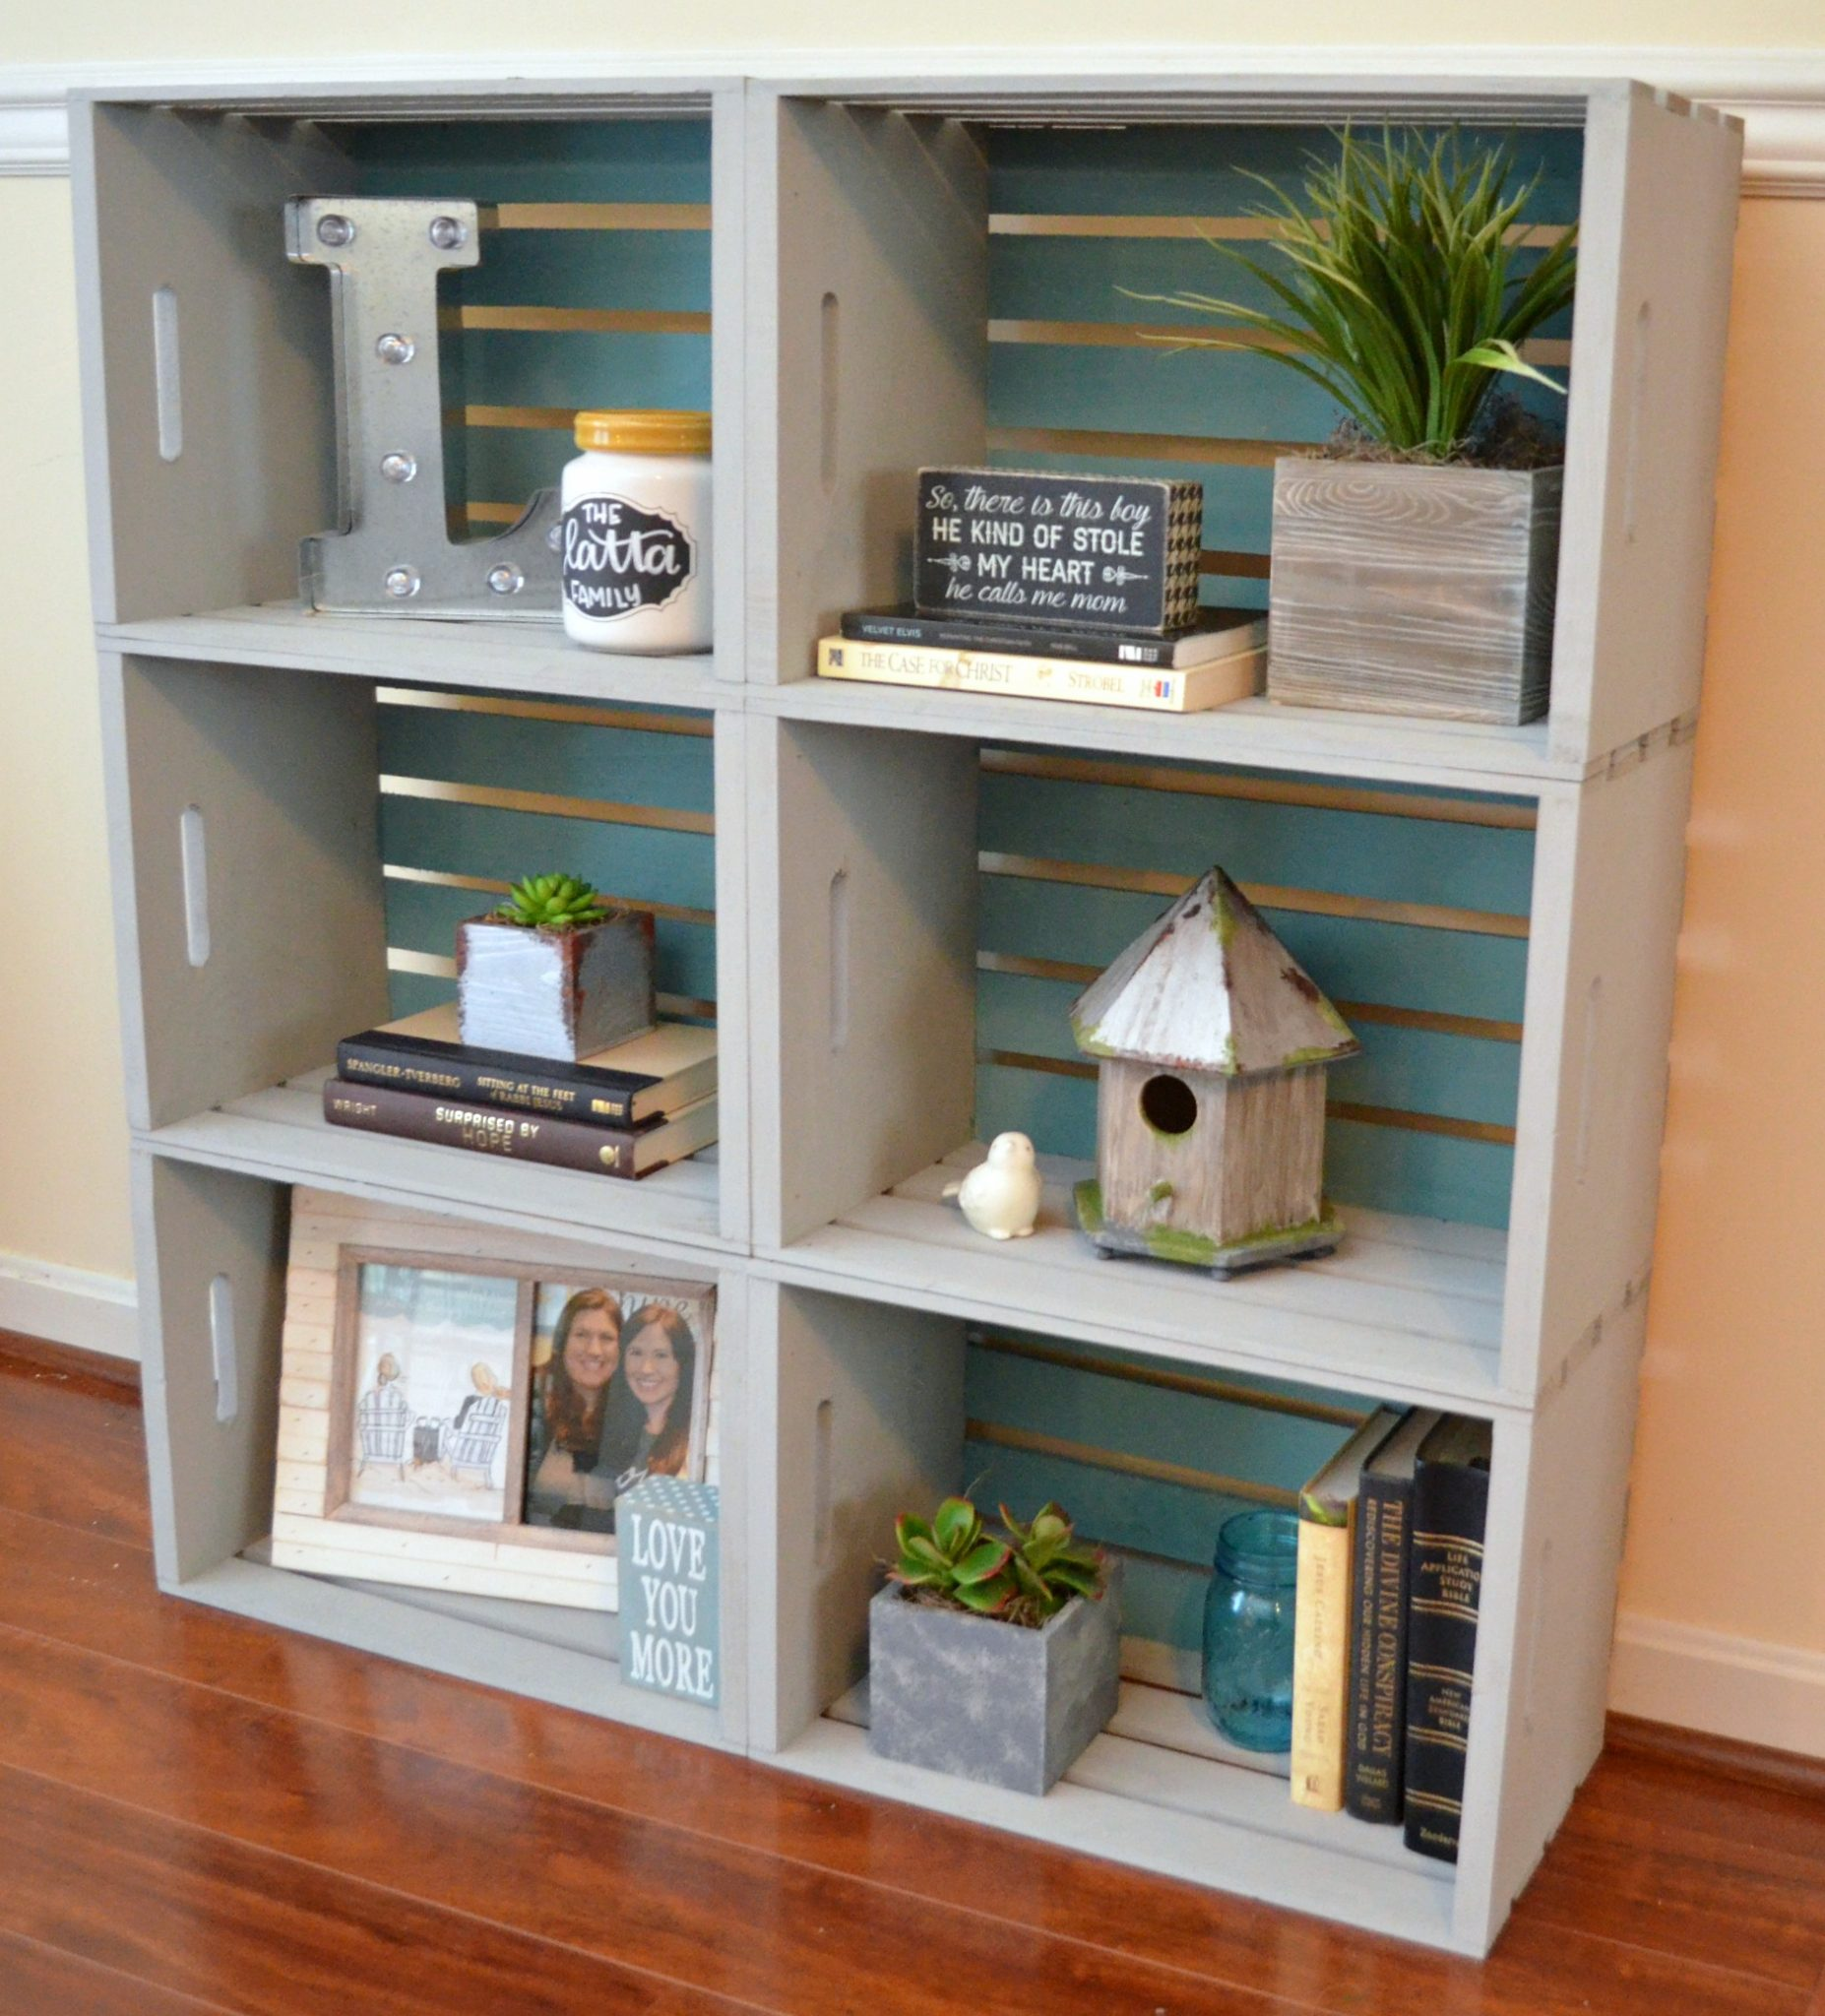 Diy crate bookcase amy latta creations for Shelves made out of crates